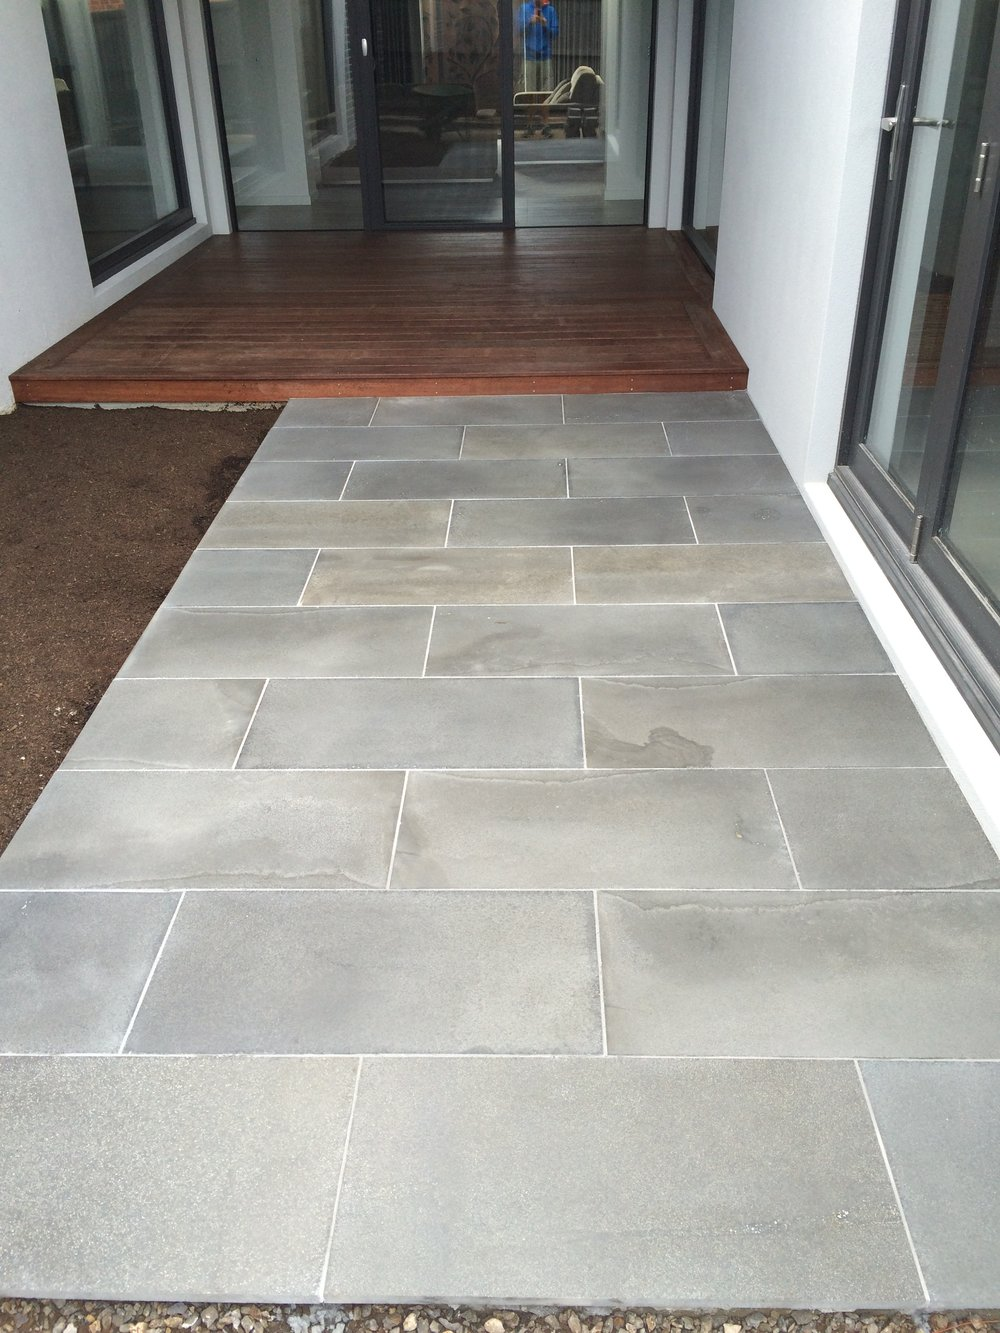 Paving in stretcher bond style